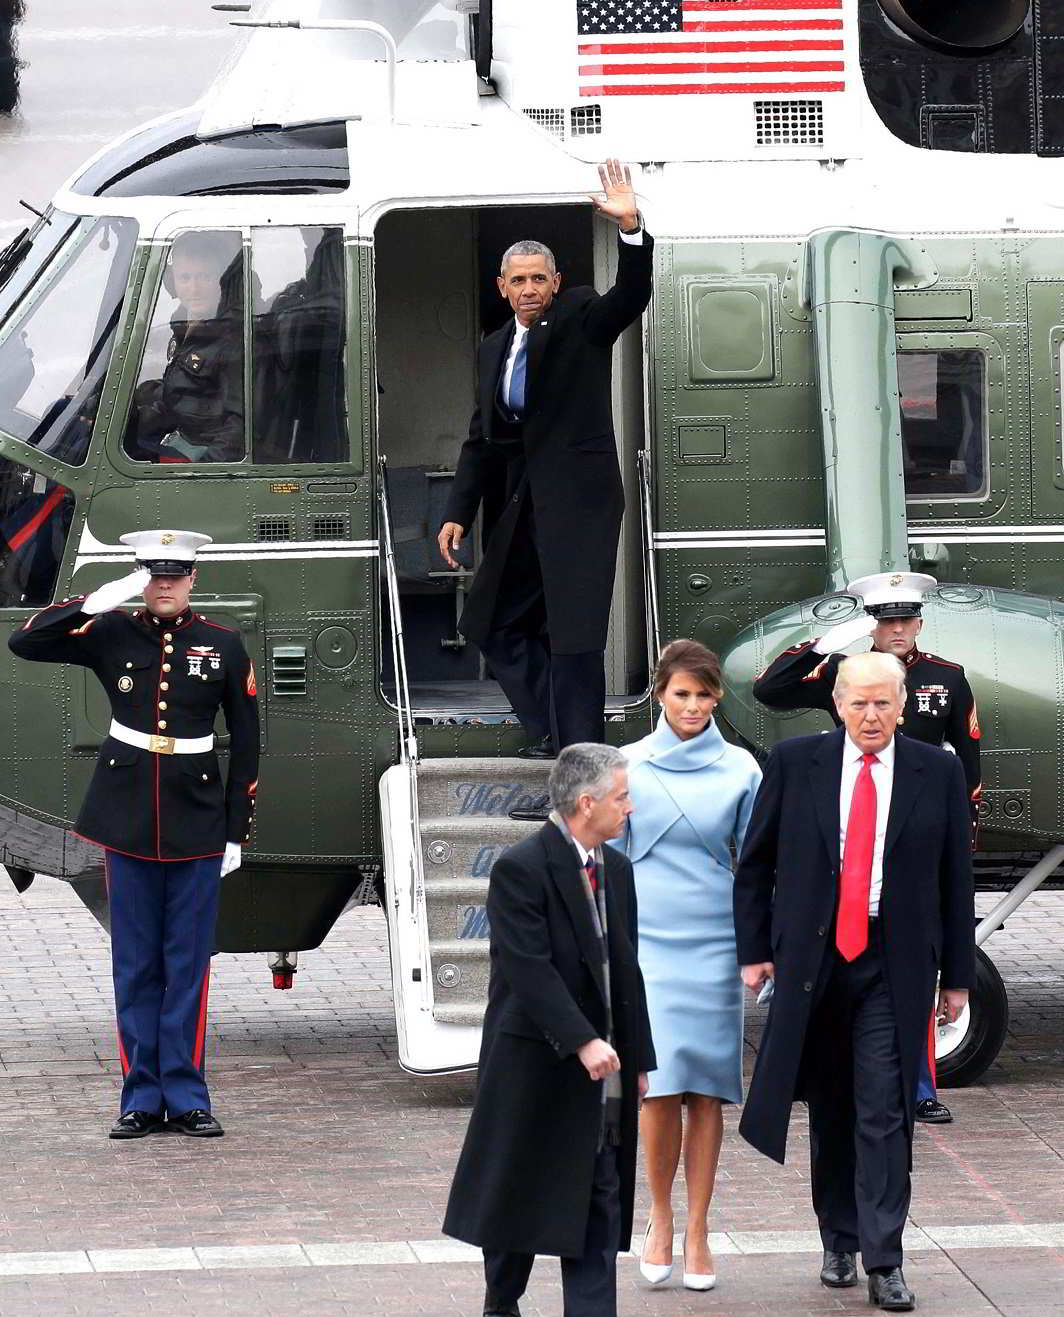 The Final Goodbye- Former President of the United States Barack Obama waves from a Marine One helicopter as newly elected United States President Donald Trump walks with wife Melania Trump back to the Capitol Building after Trump is sworn in at the 58th Presidential Inauguration on Capitol Hill in Washington, D.C., U.S., January 20, 2017. REUTERS-9R